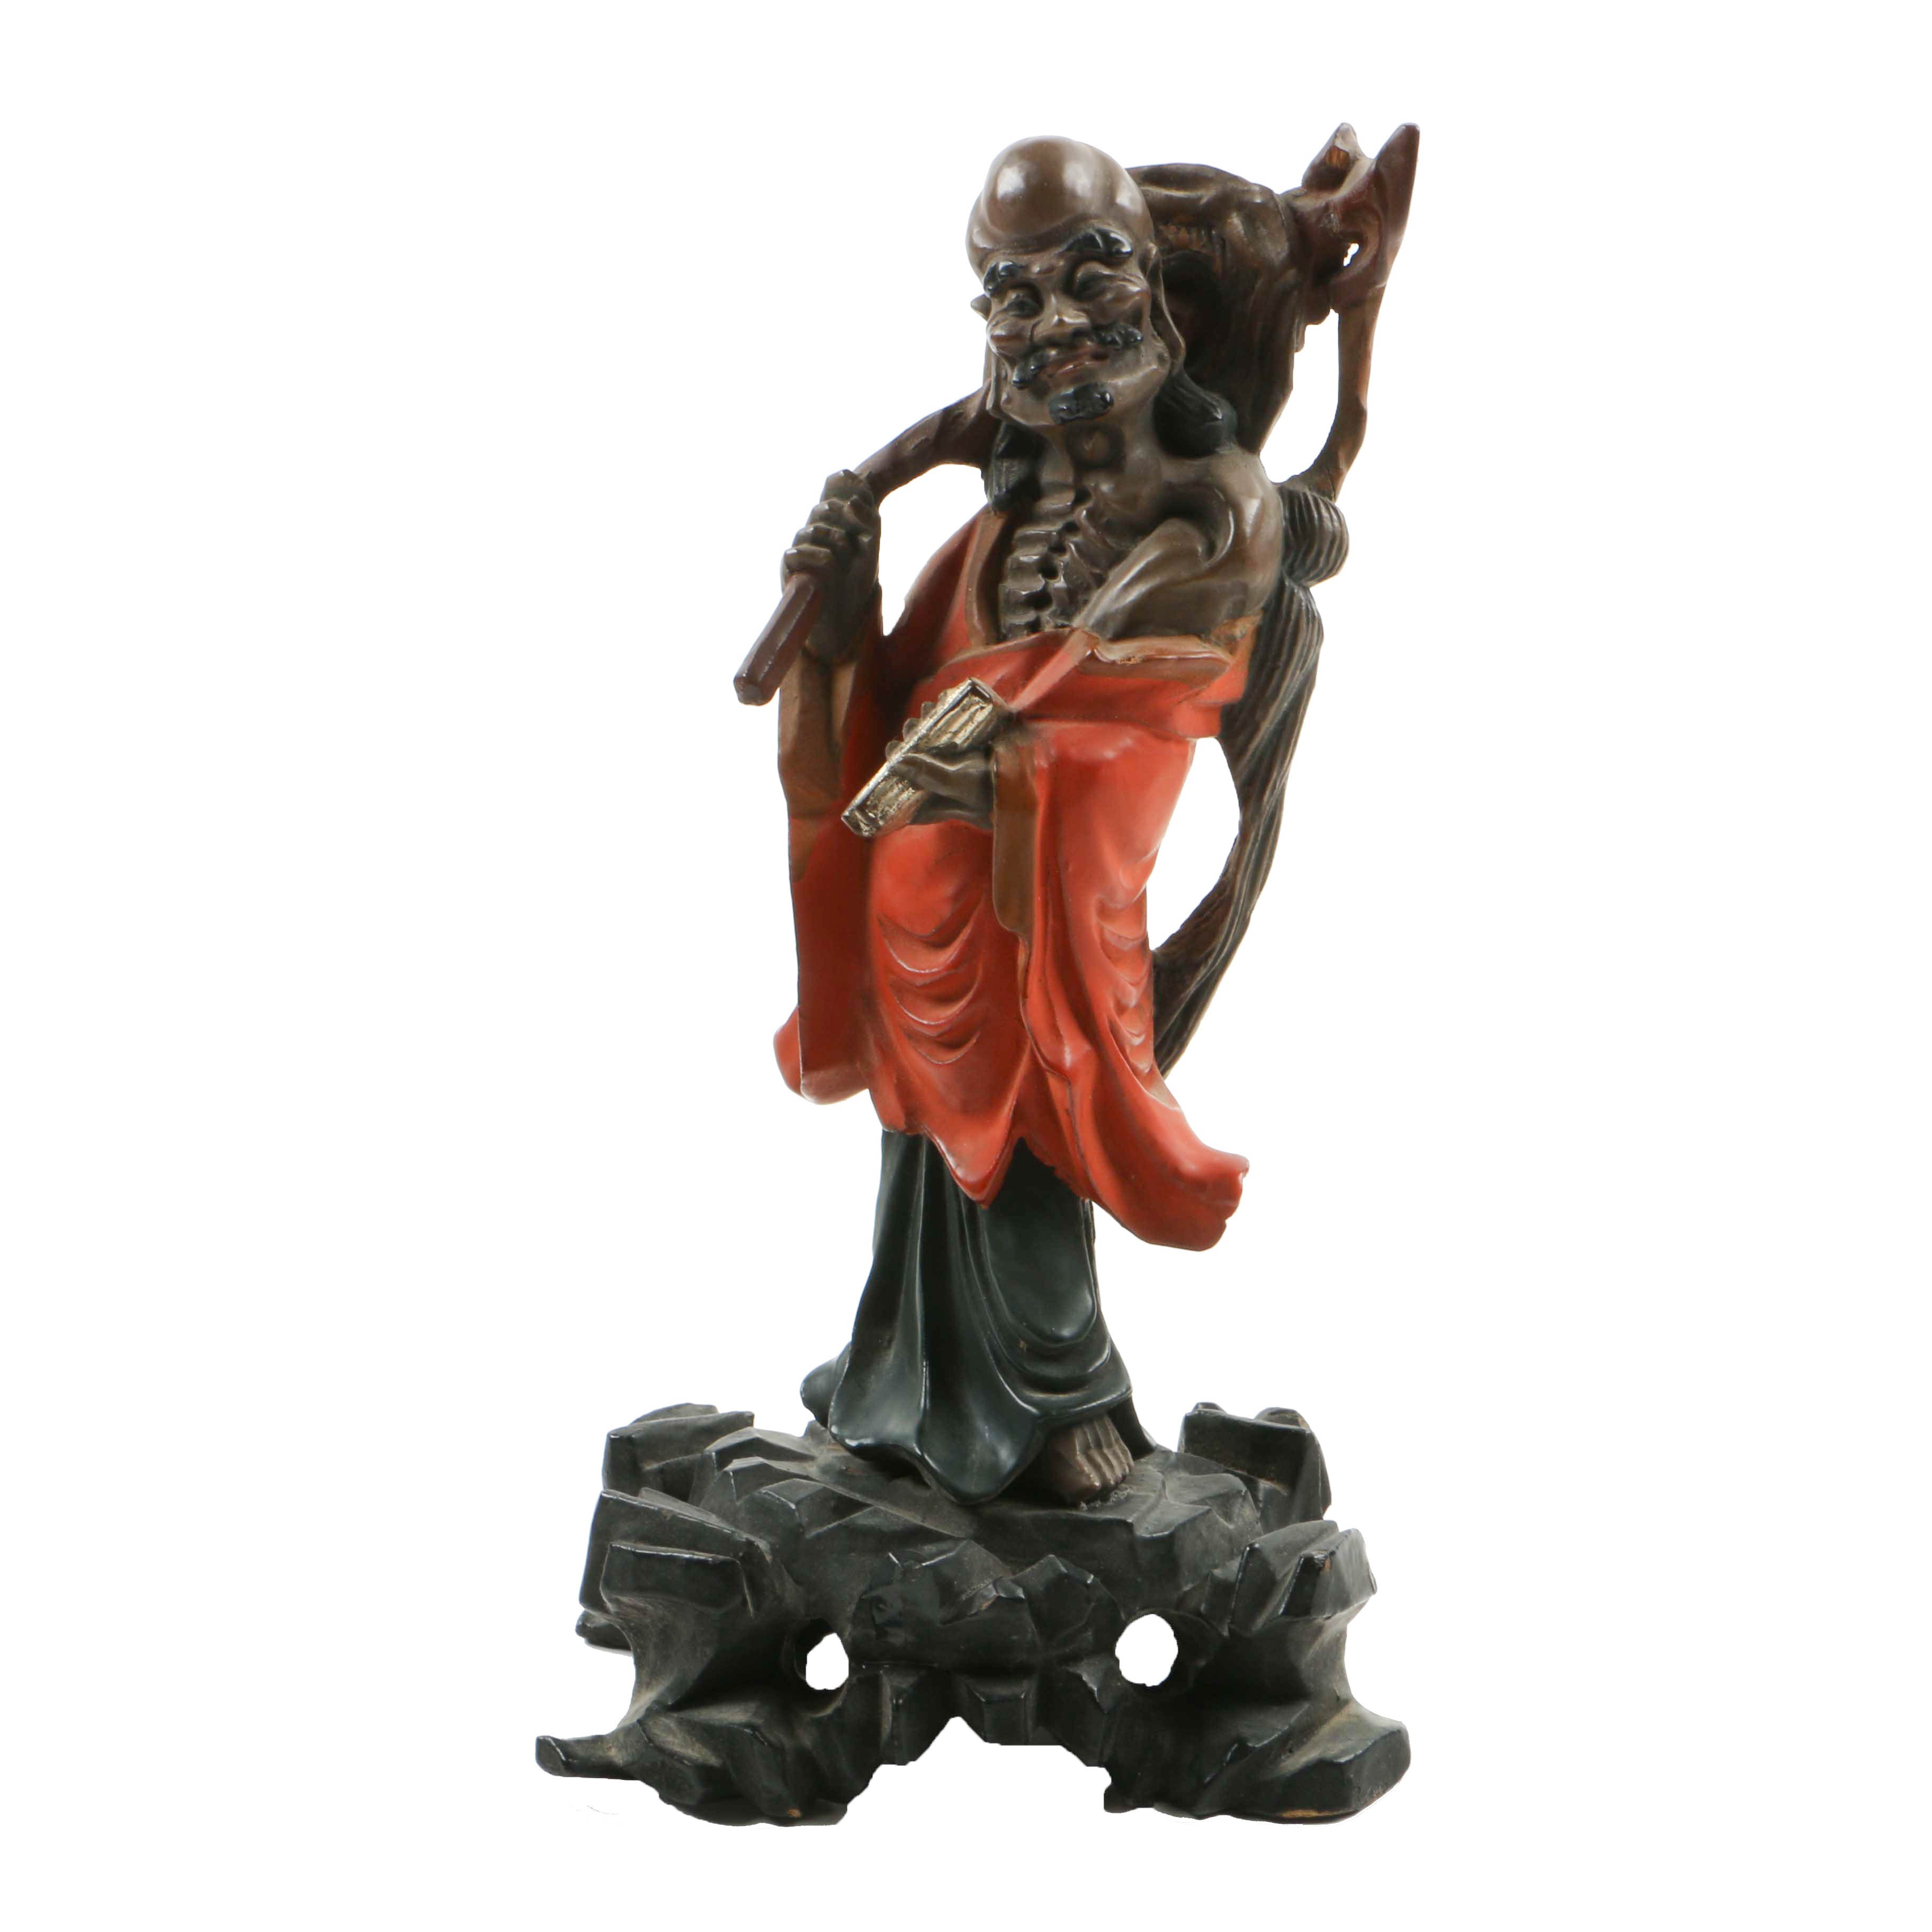 Chinese Carved Wood and Lacquered Figure of Elderly Gentleman on Base